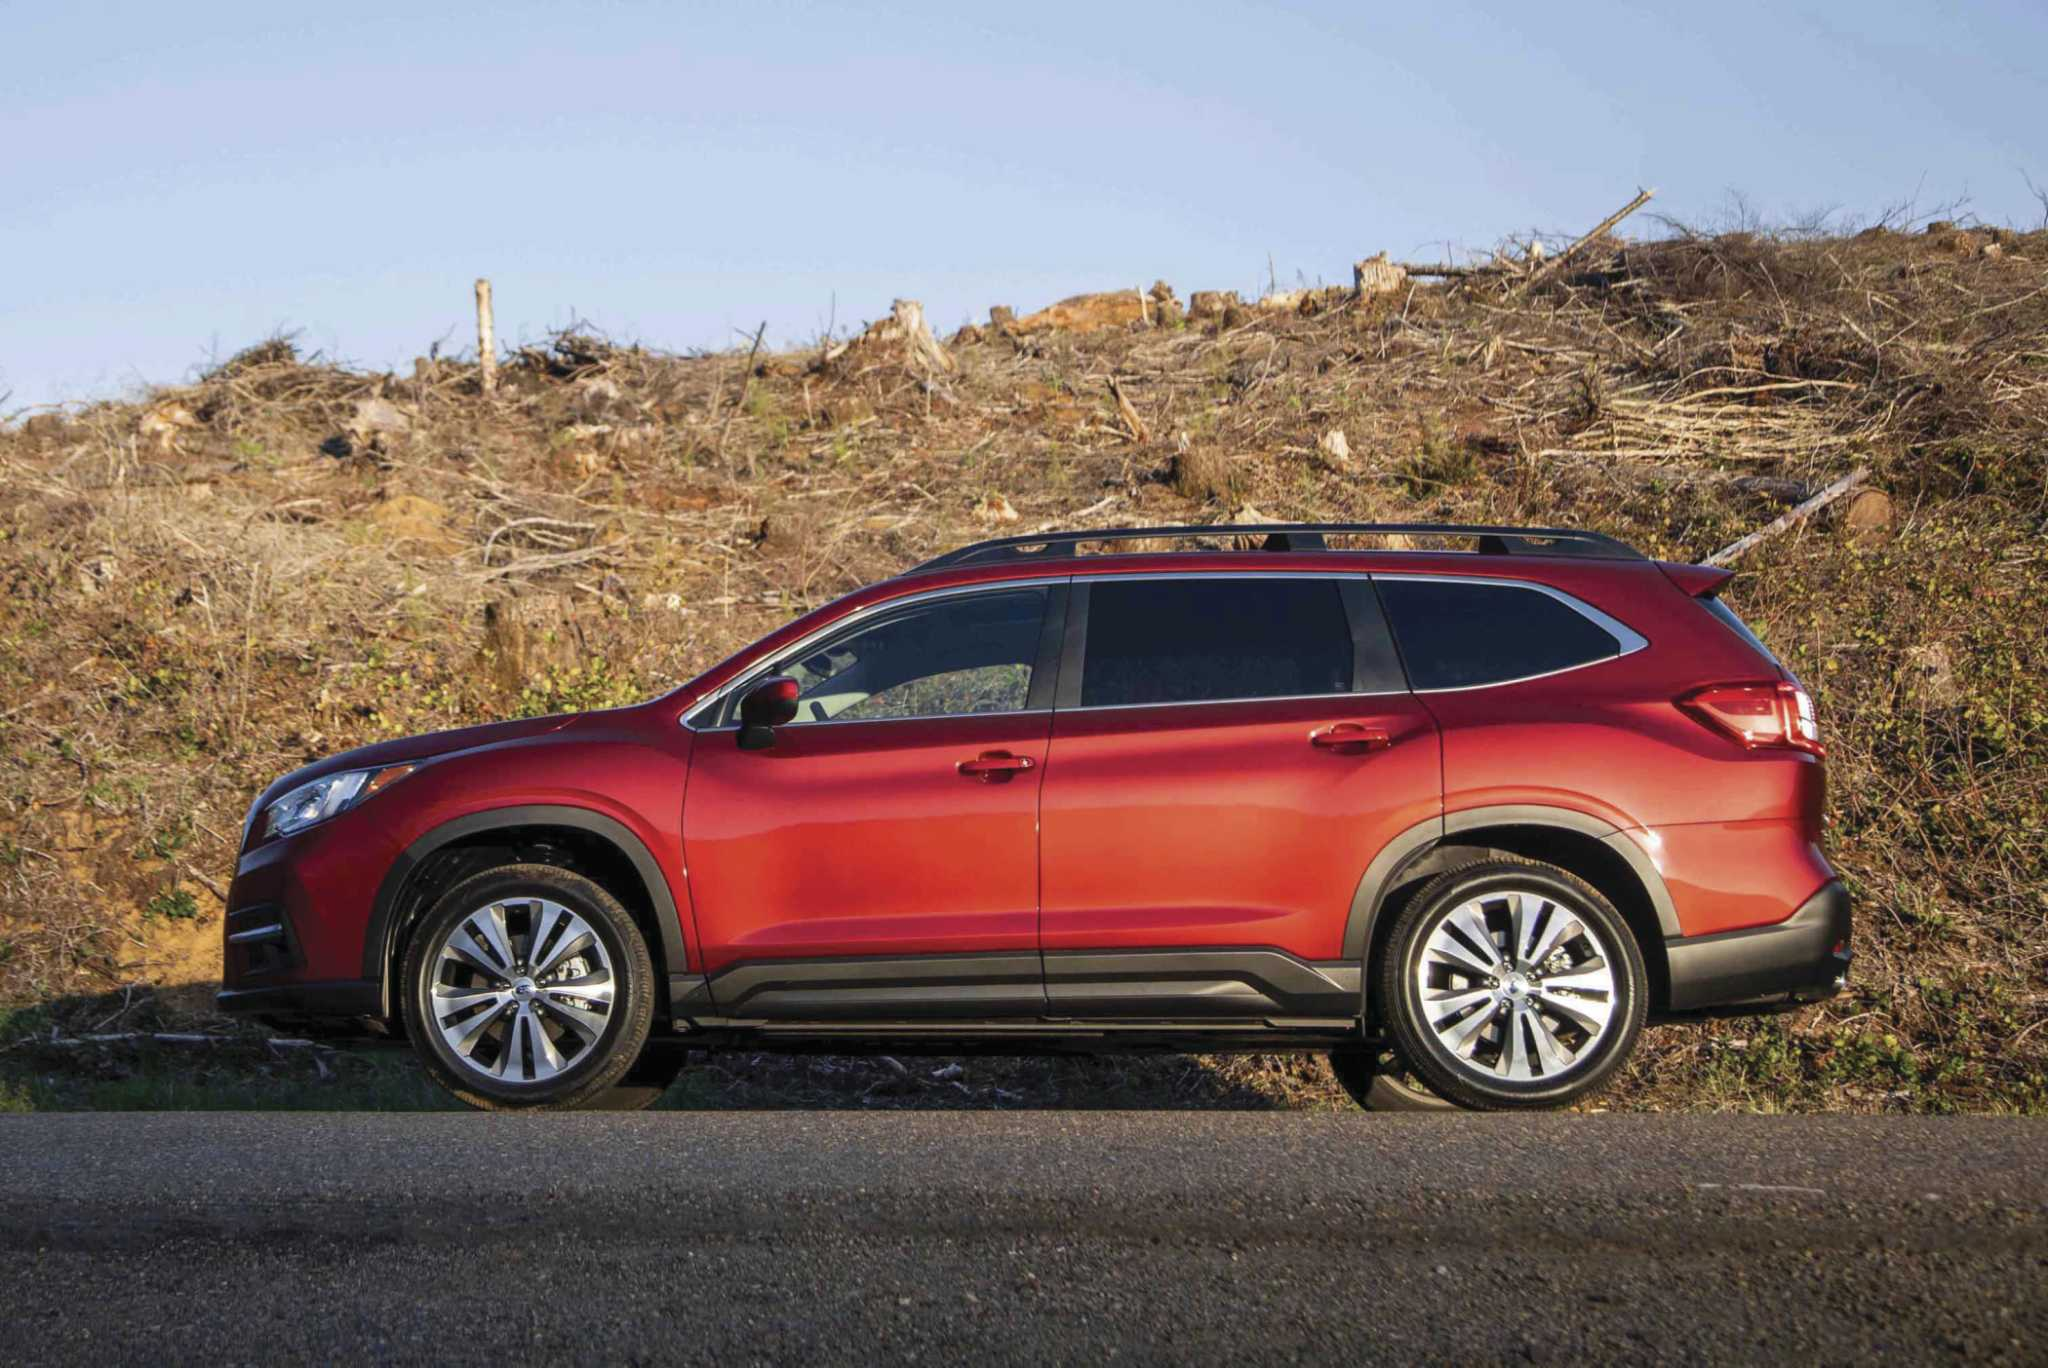 Newly arrived 2019 Subaru Ascent fills three-row midsize SUV niche